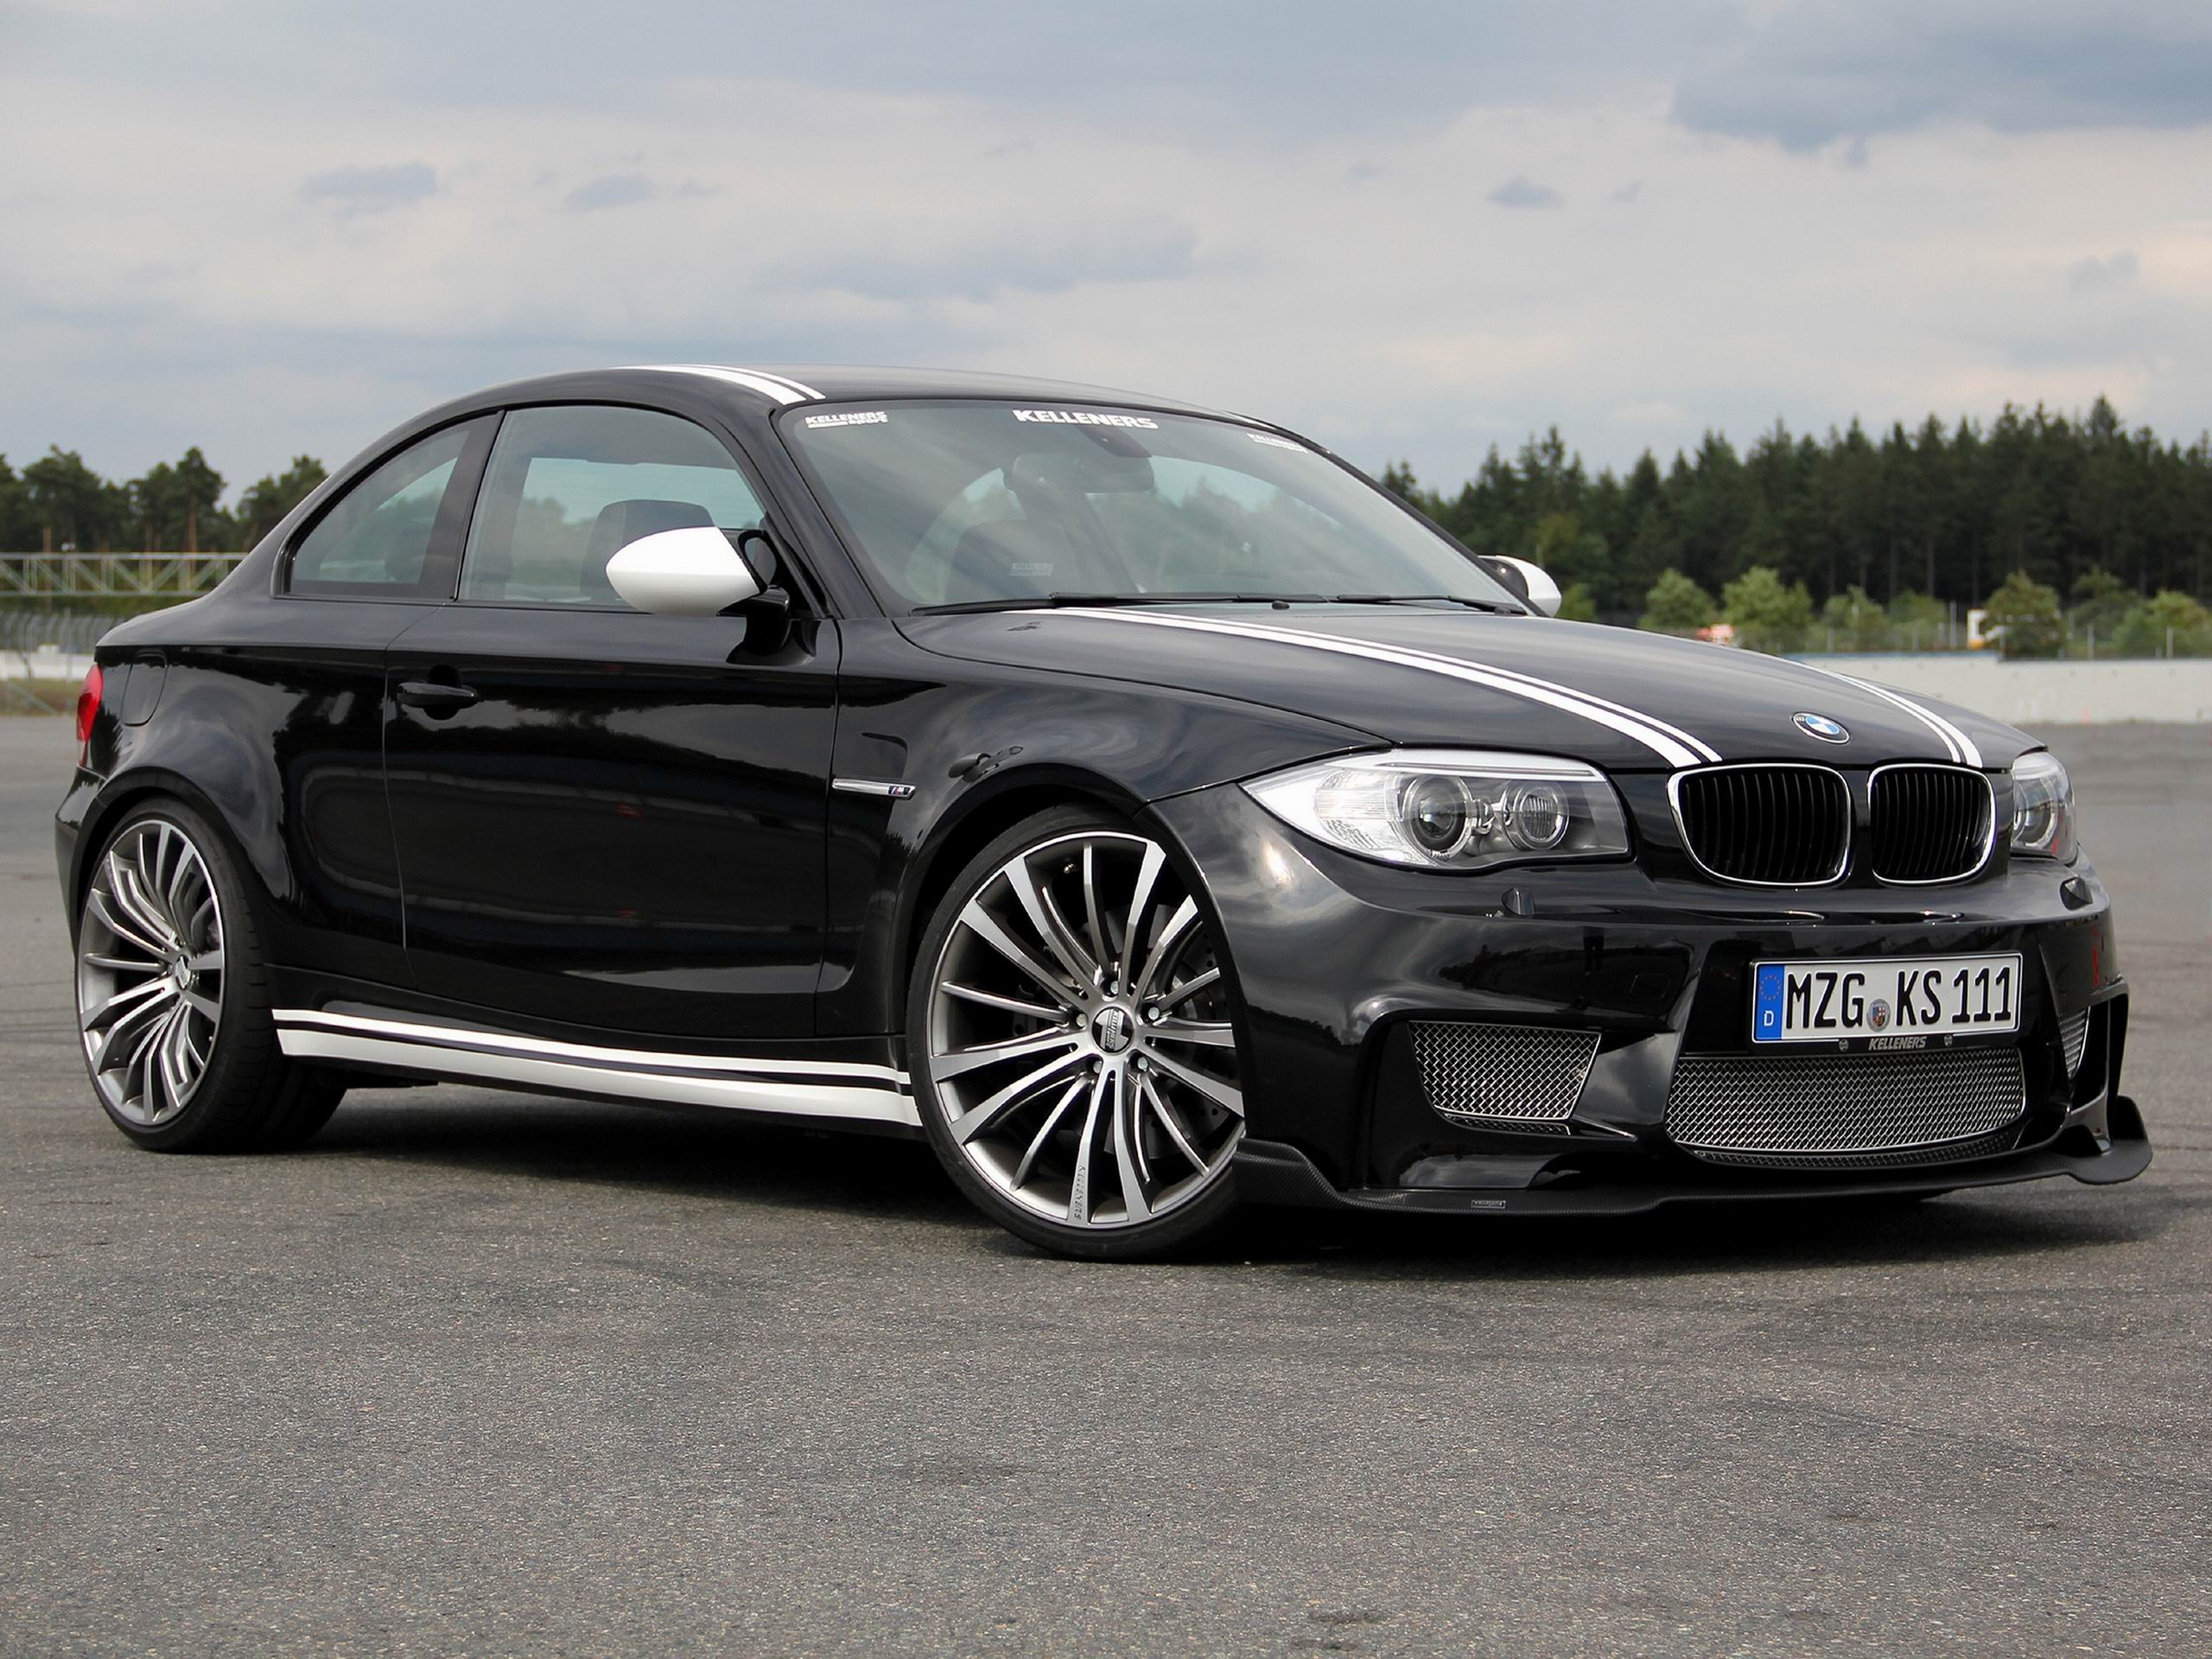 Cars bmw 1er m coupe (e82) 2012 #10